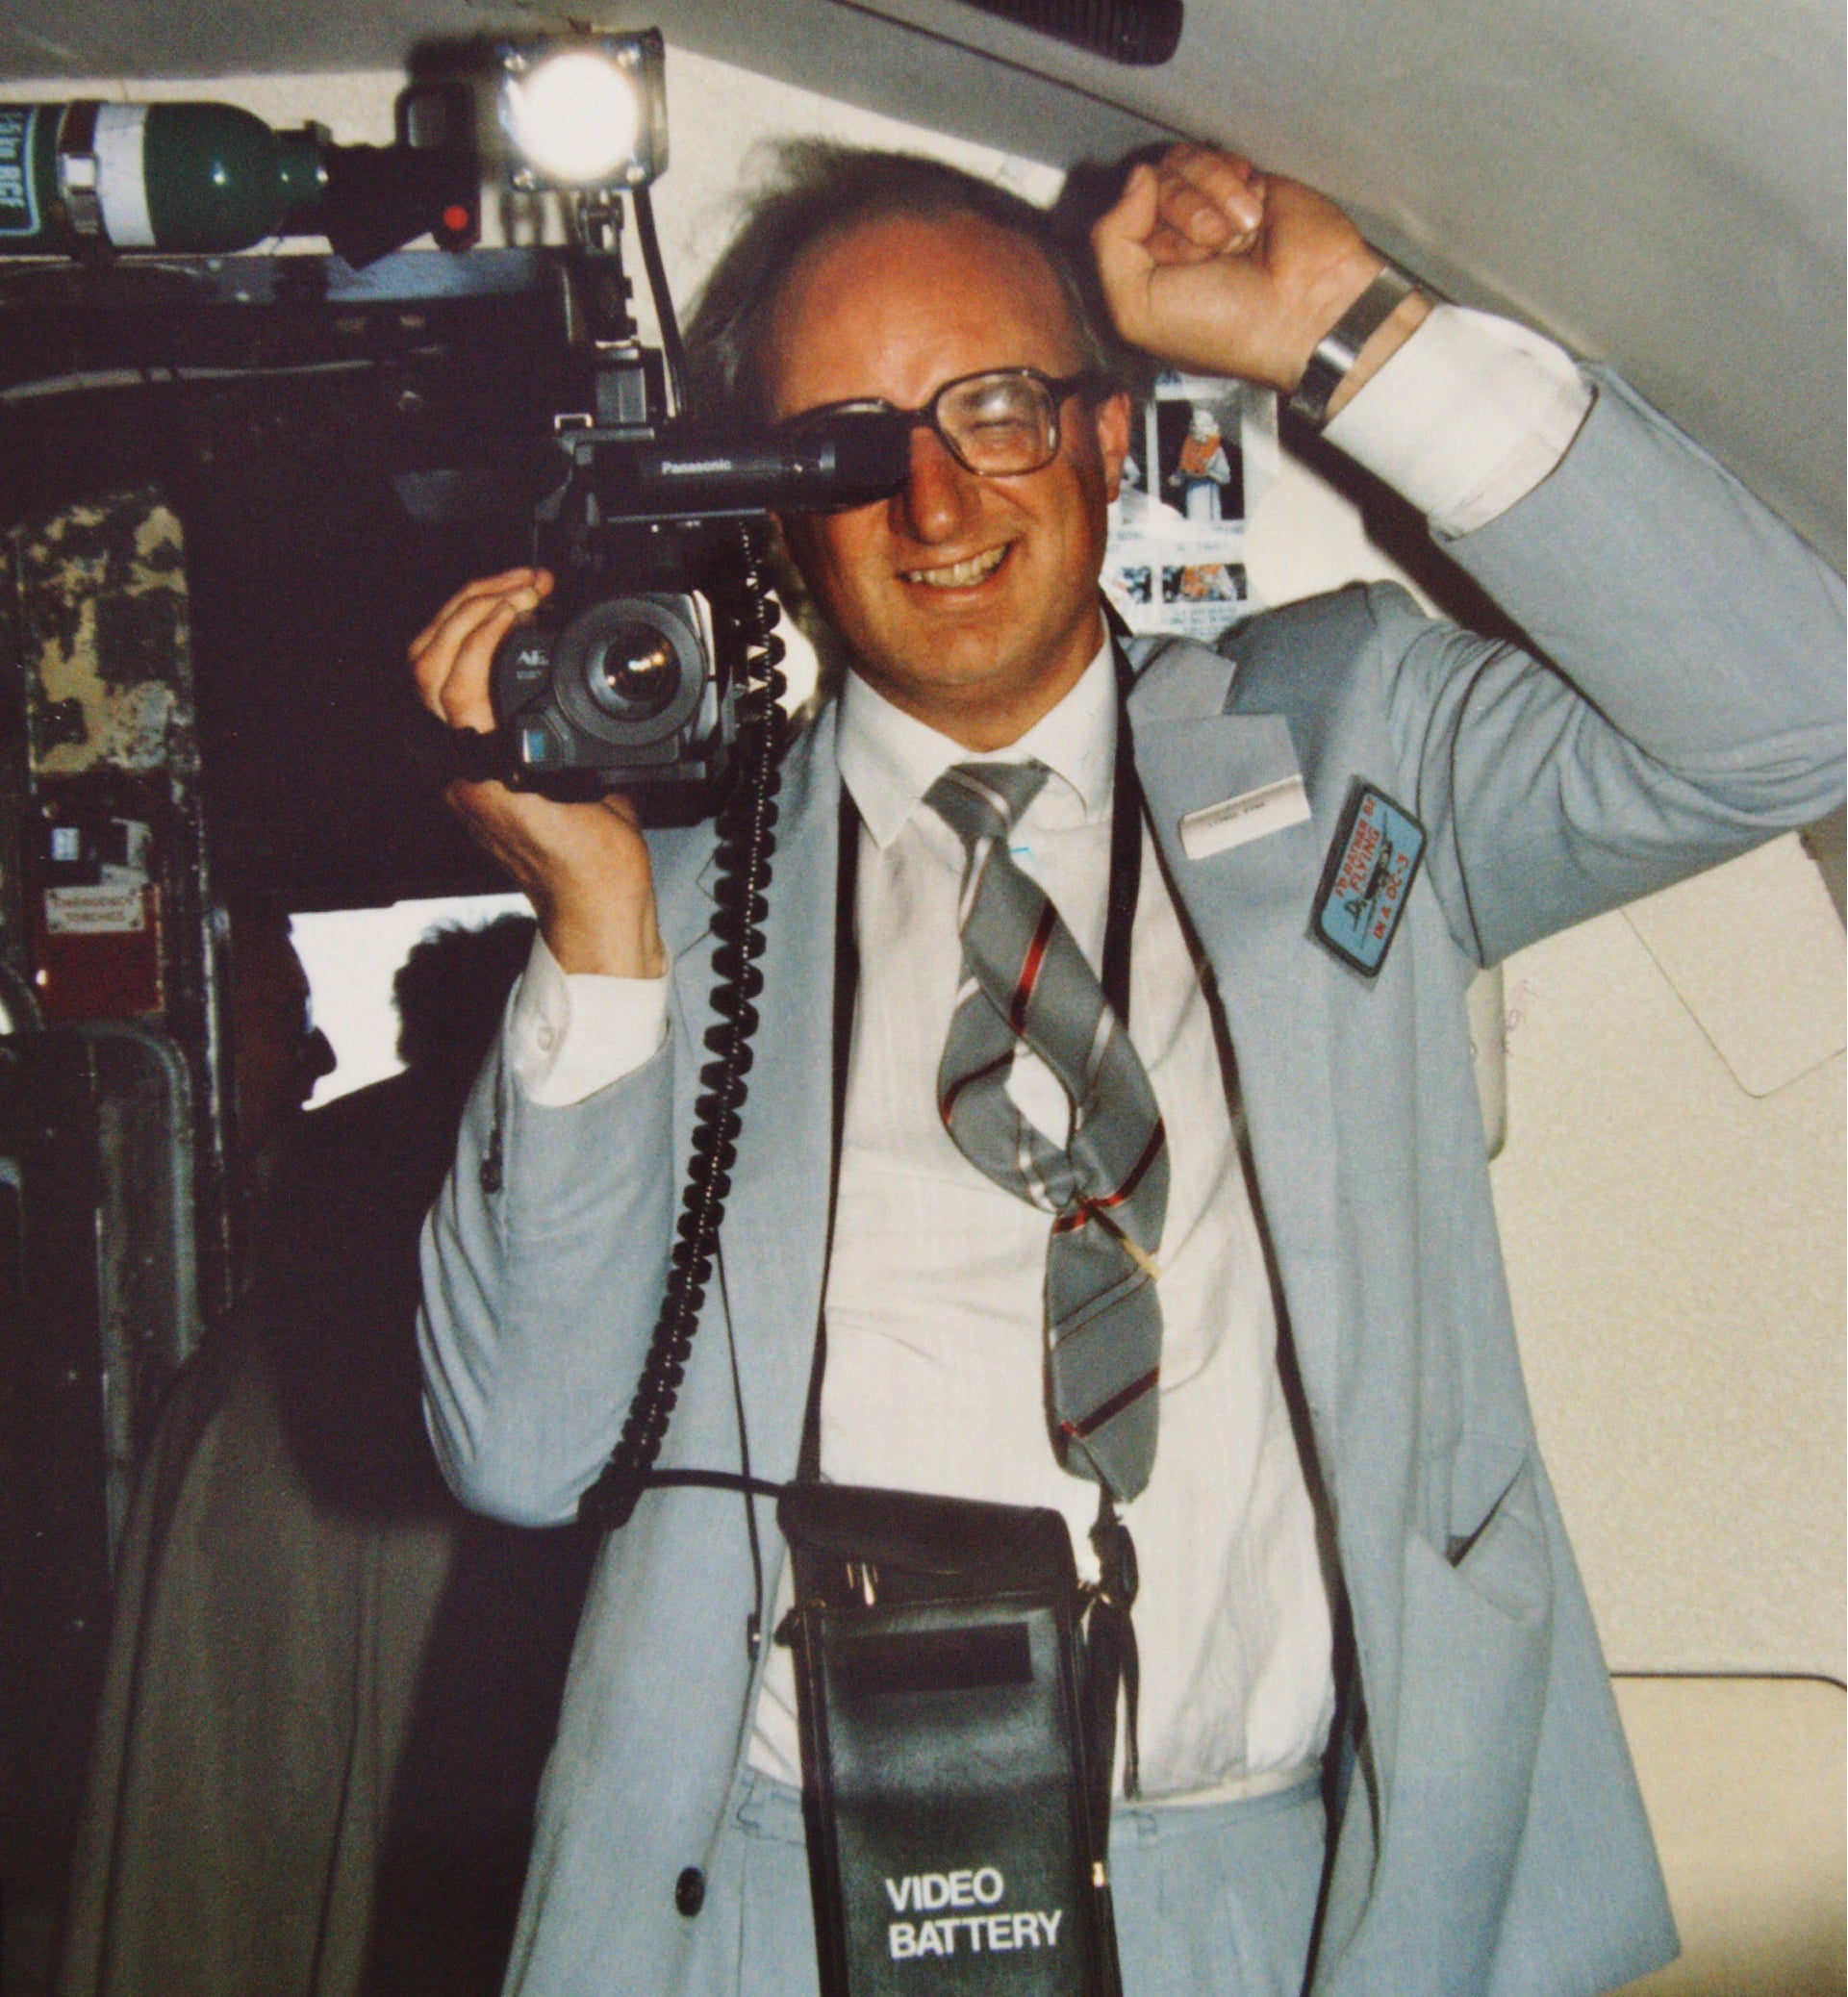 Lionel Fynn in 1985 with his lightweight holiday gear.